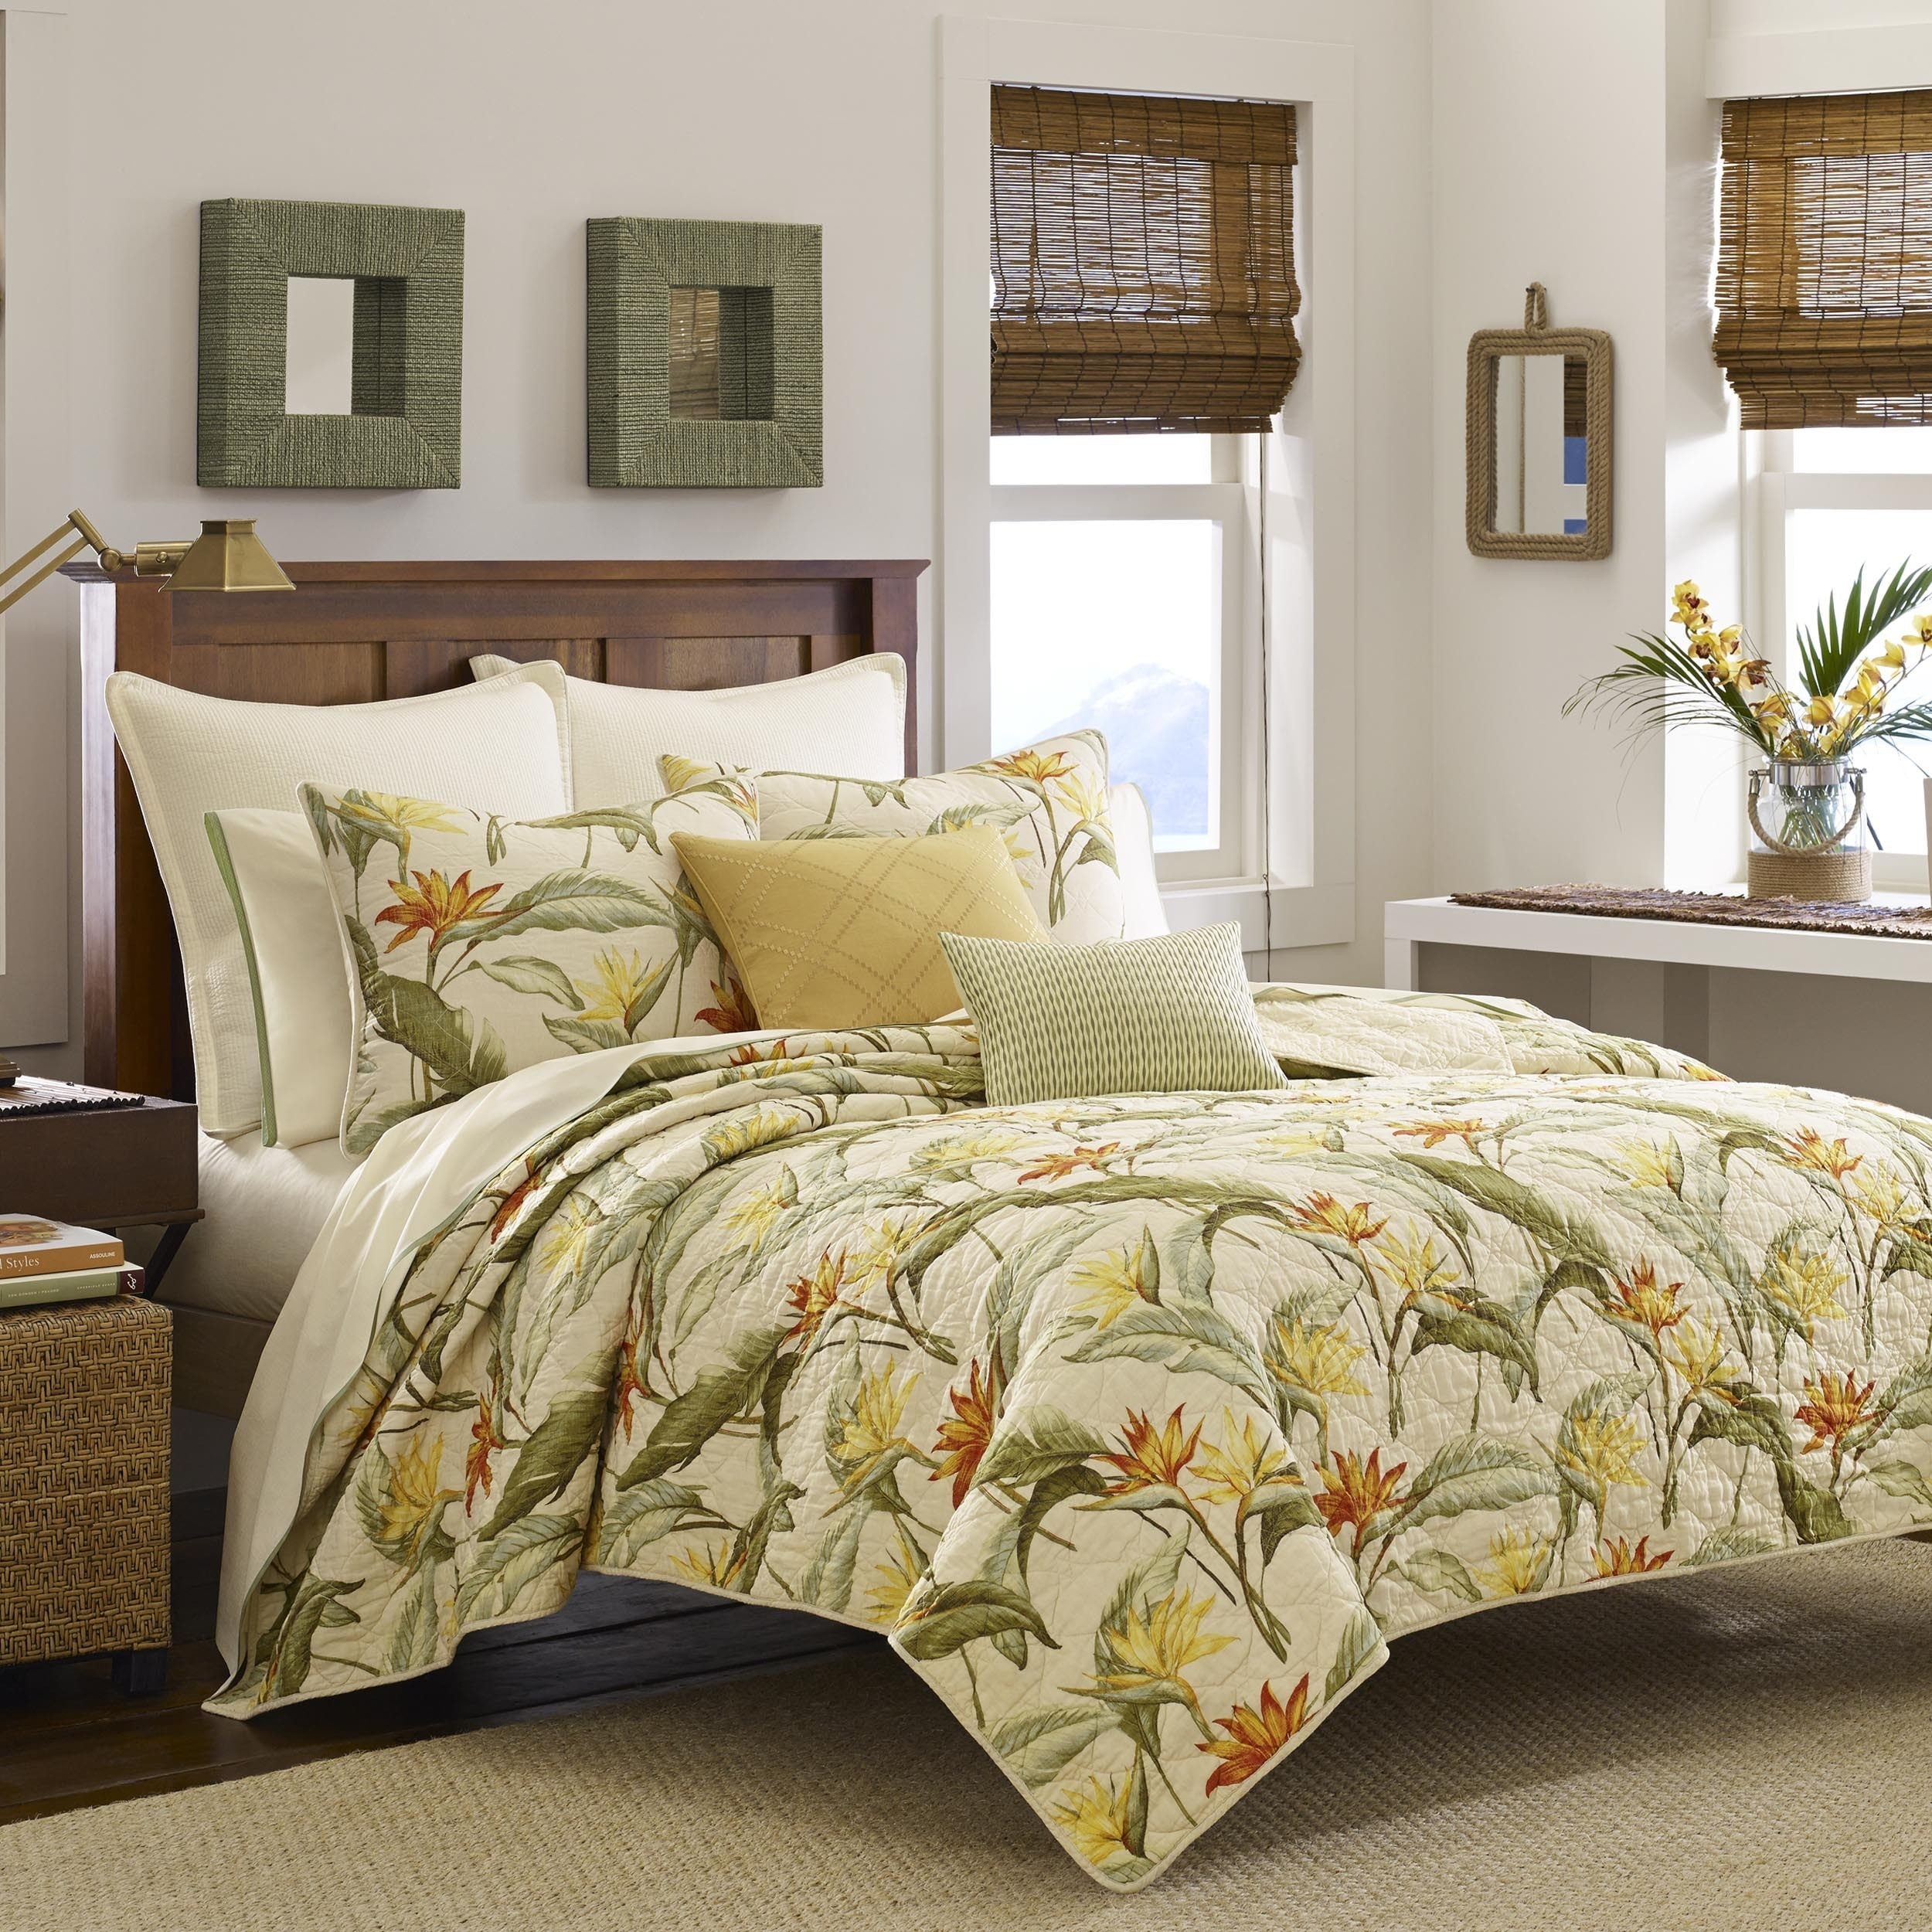 stripe southern king set porcelain bahama breeze twin duvet paradise cover surfside queen bamboo catalina comforter sets tommy